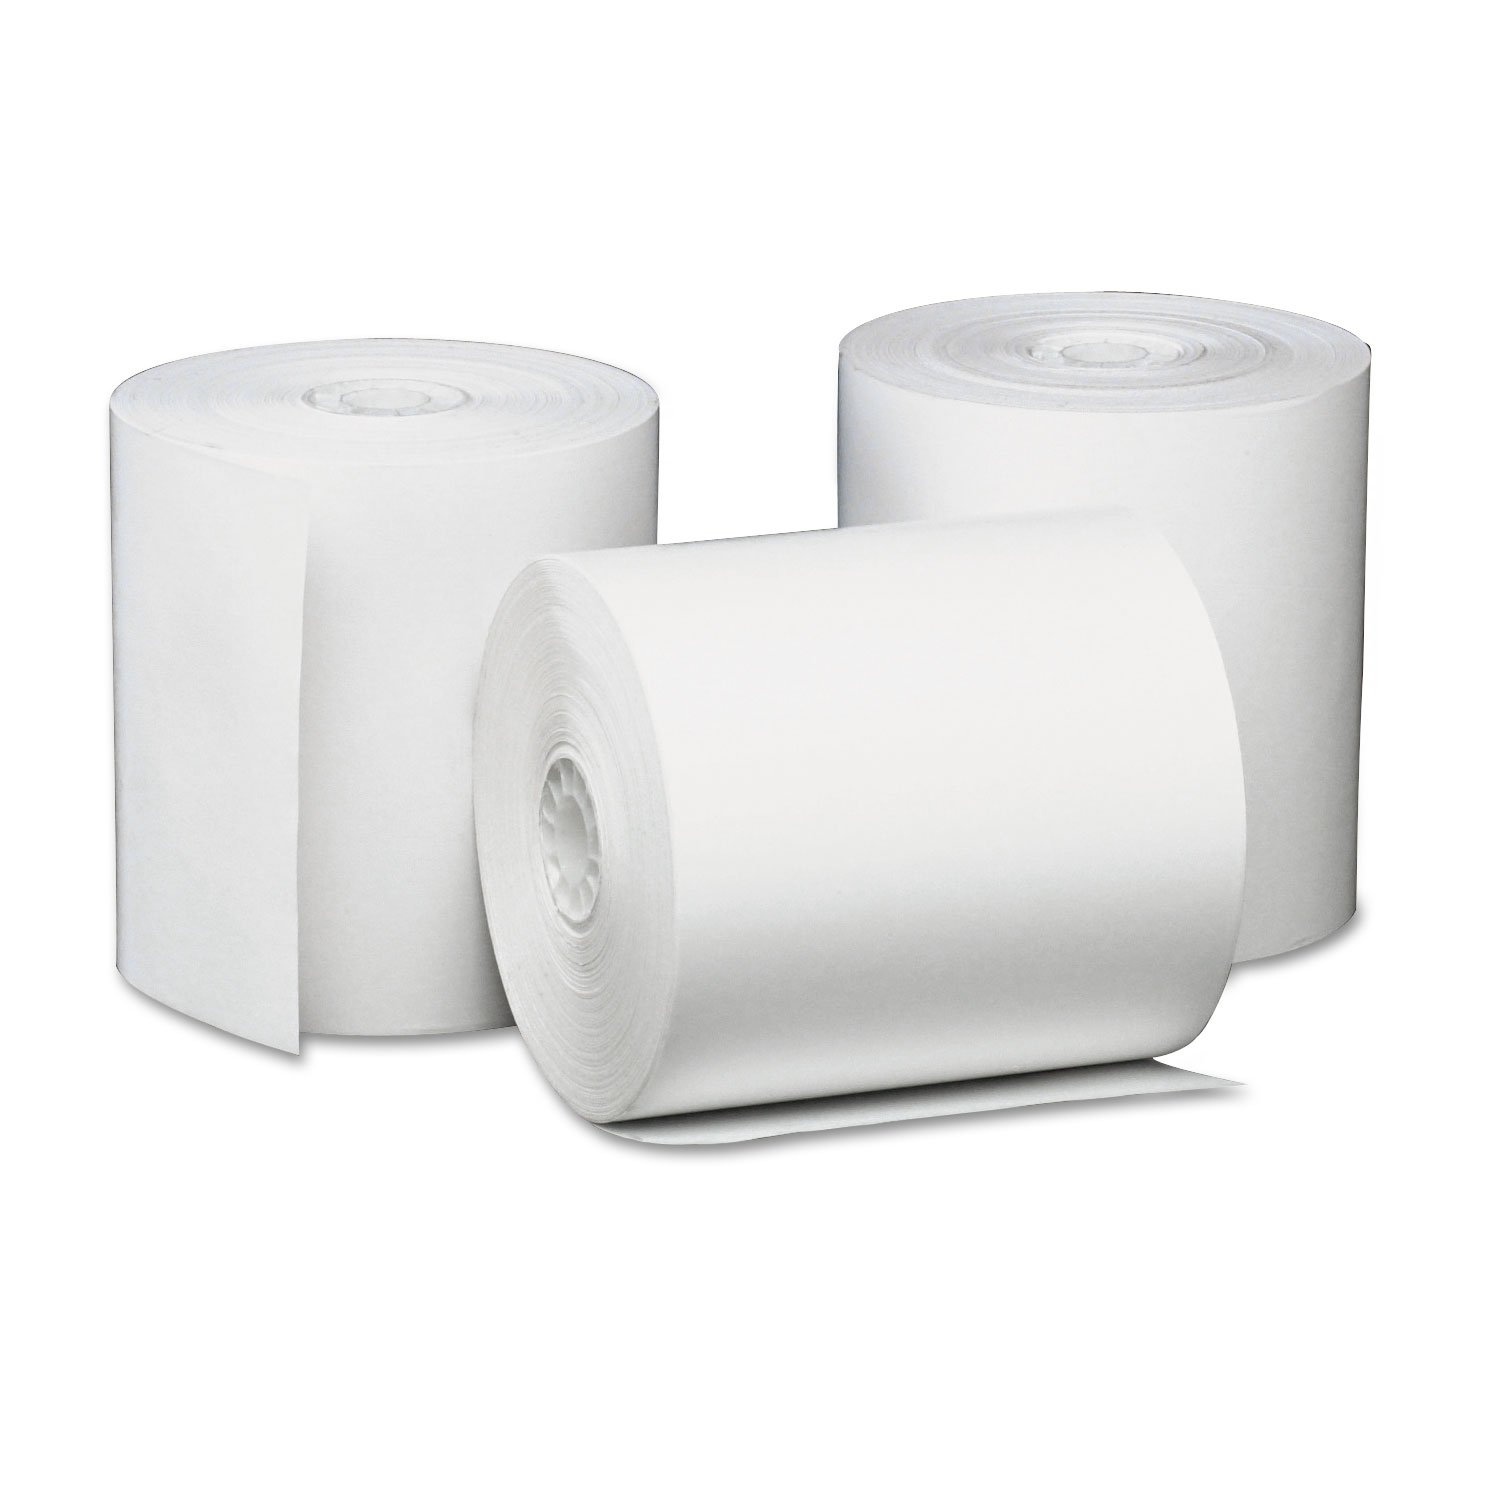 Universal 35763 Single-Ply Thermal Paper Rolls, 3 1/8 x 230 ft, White (Case of 50) 3 1/8 x 230 ft Universal Exchange UNV35763